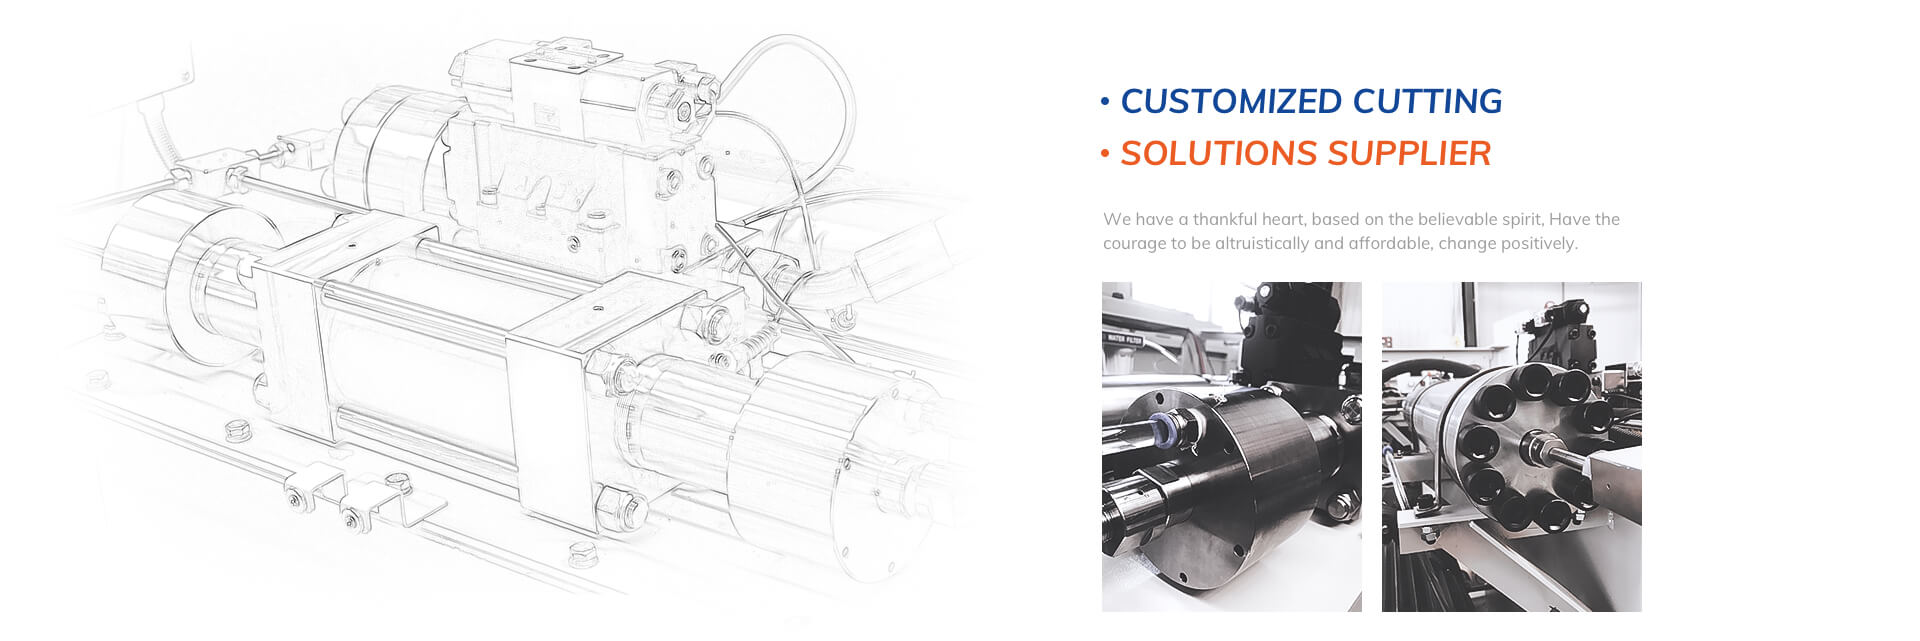 Customized cutting solutions supplier